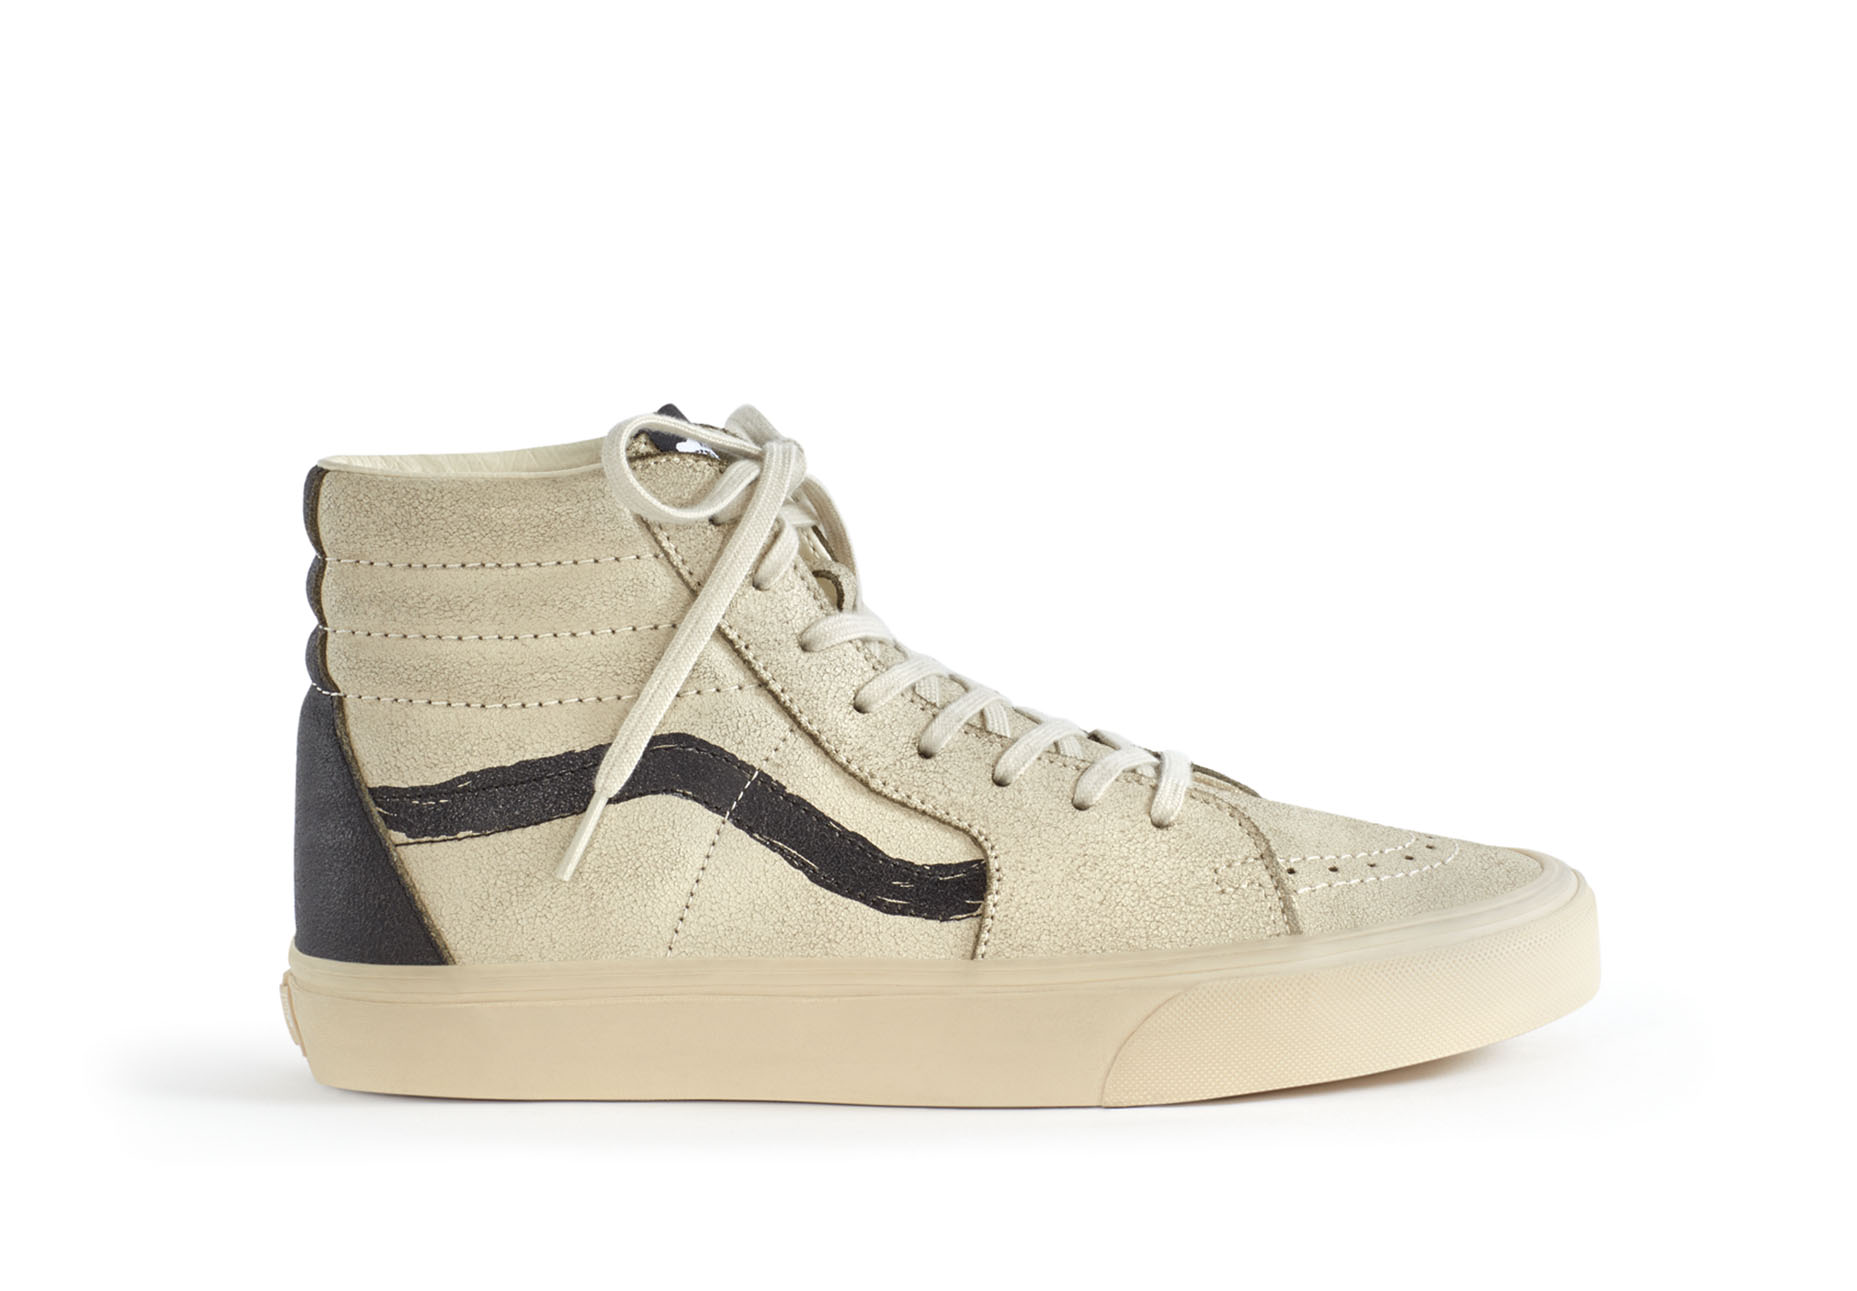 MARNI x Zalando | Vans Sk8 hi | Fashion shoes online